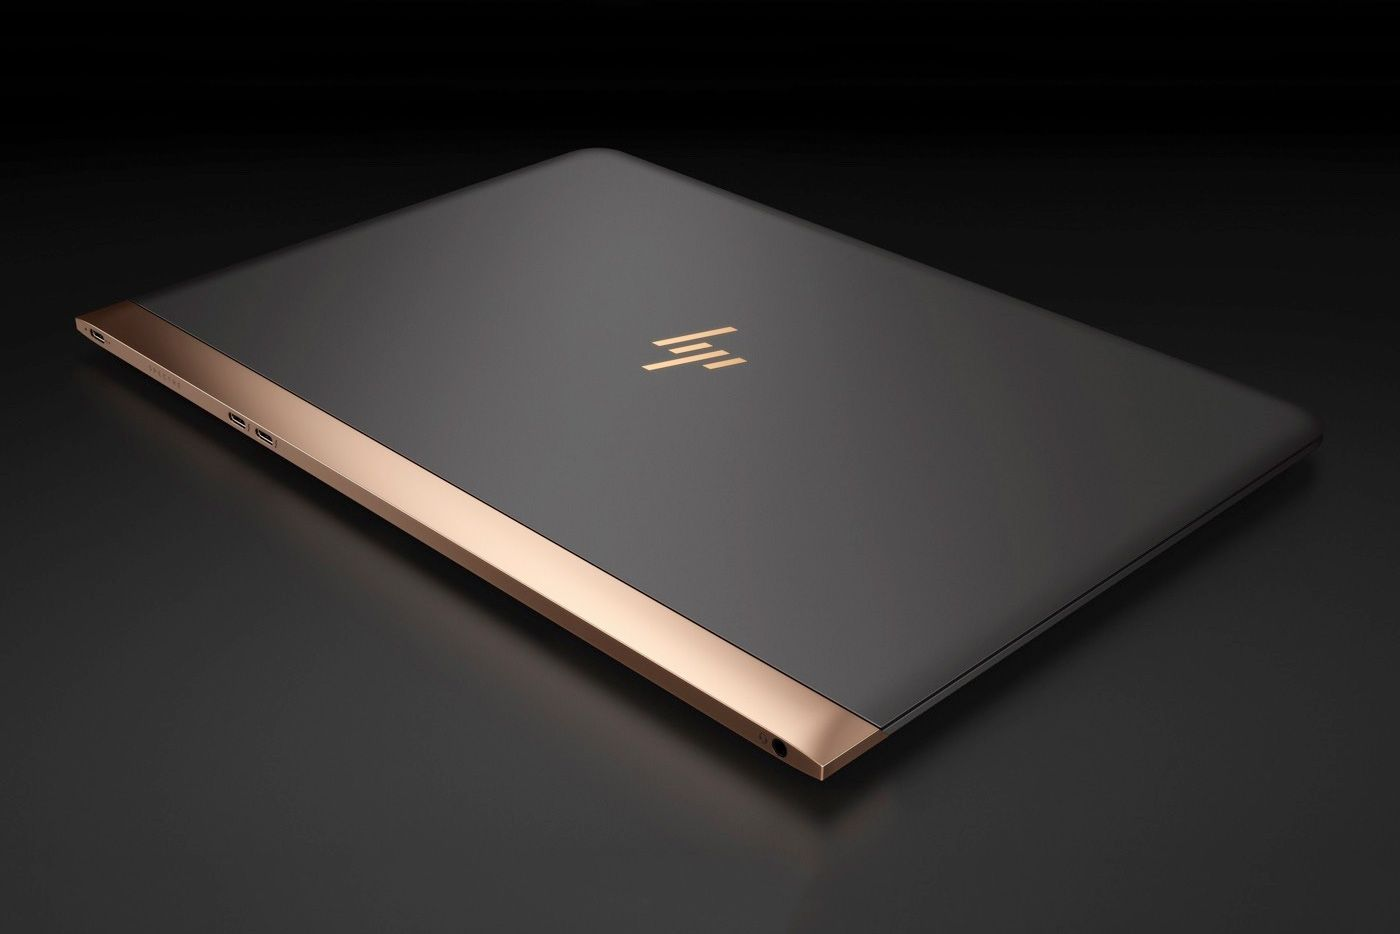 HP's Spectre Laptop Is As Thin As a AAA-Battery | Best gaming laptop, Hp  spectre laptop, Spectre laptop